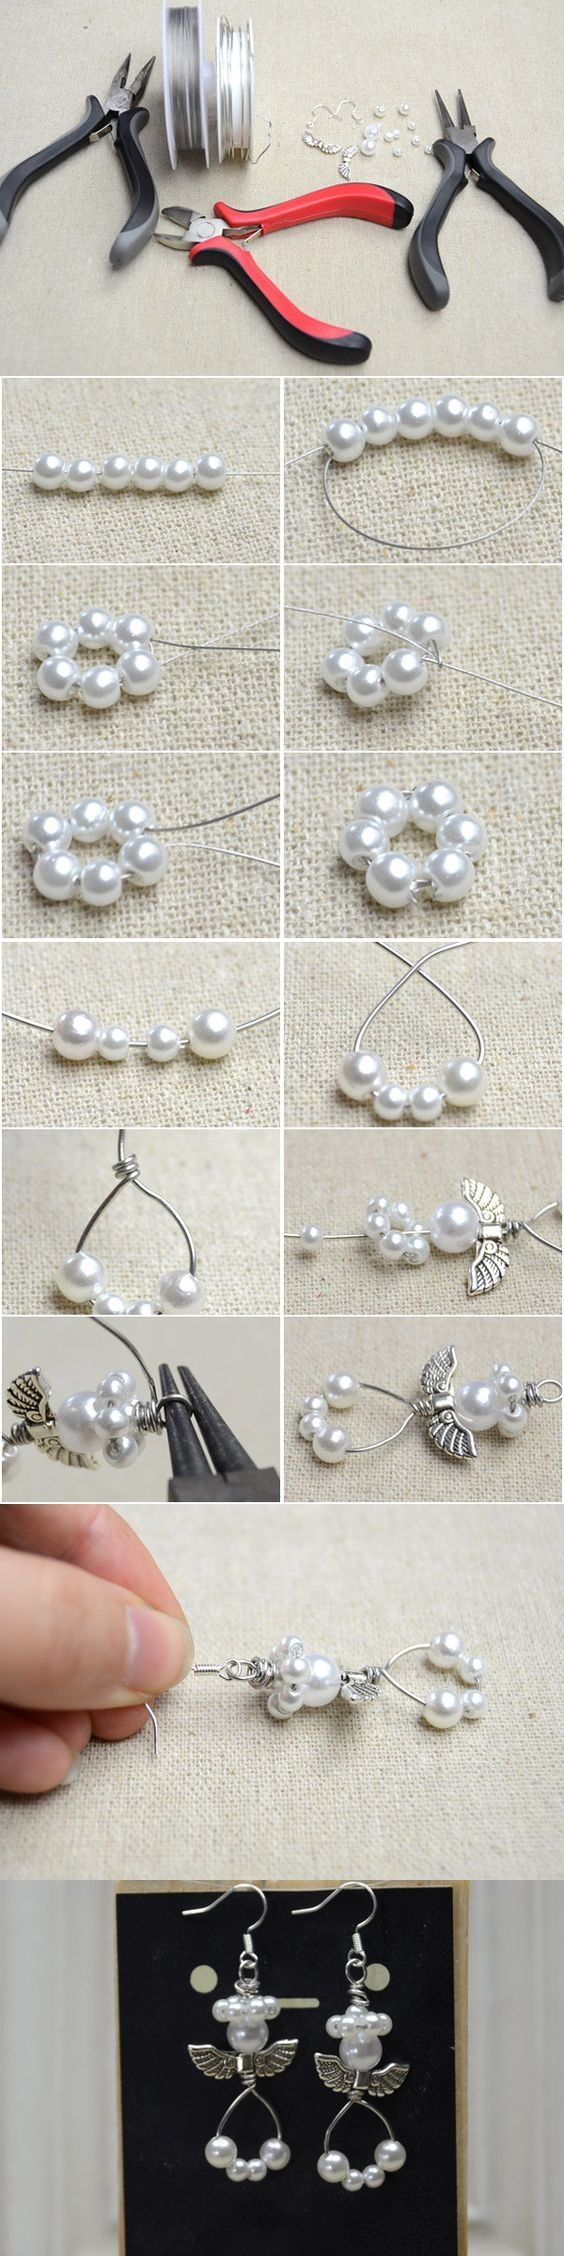 Quick Tutorial on How to Make Angel Earrings with Pearls and Wires from LC.Pandahall.com | Jewelry Making Tutorials & Tips 2 | Pinterest by Jersica